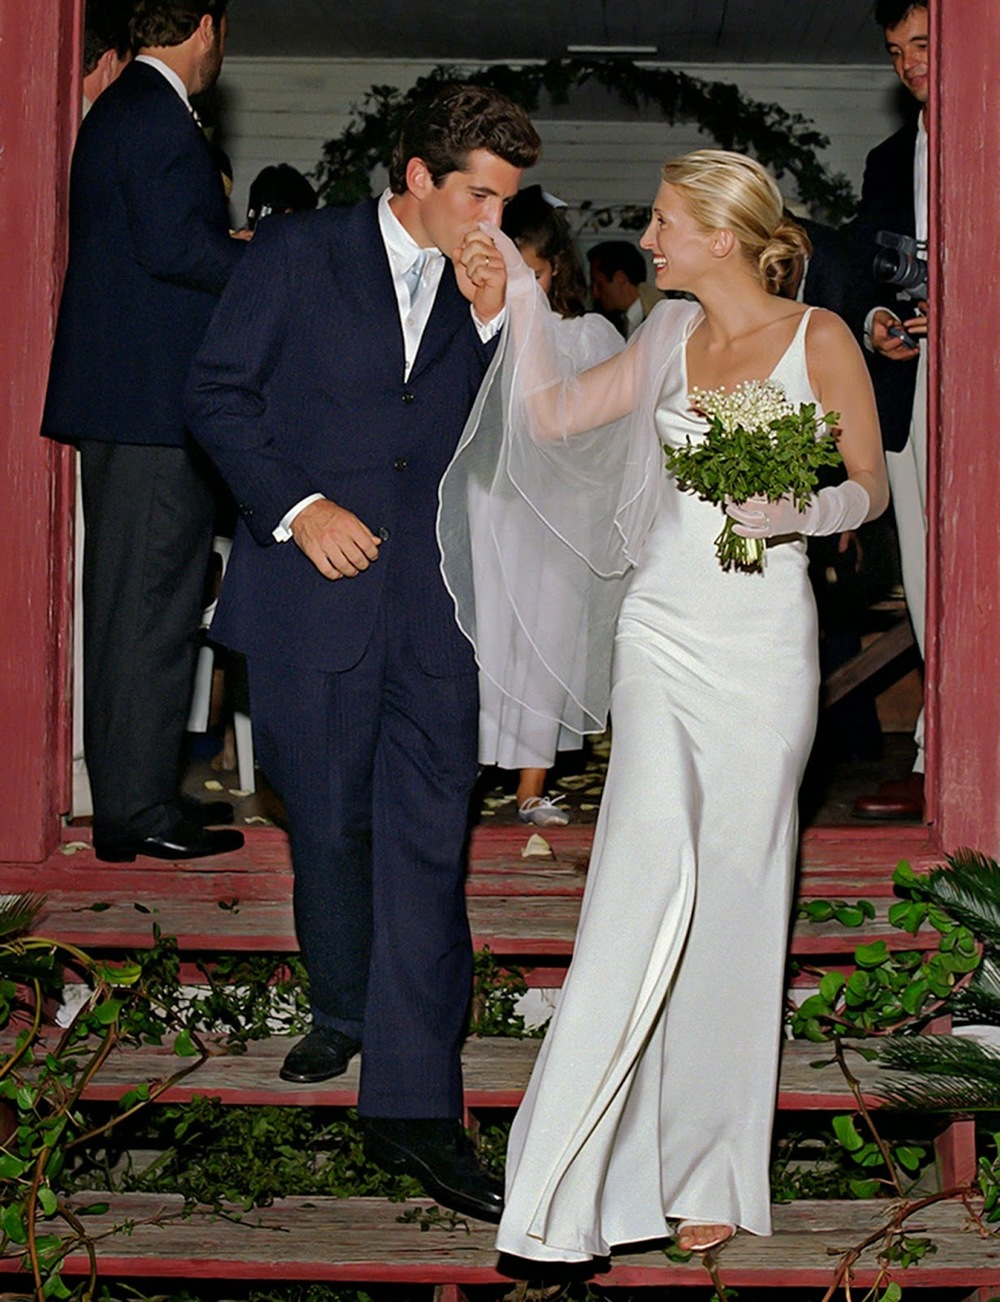 This is one of my favourite wedding photographs of all time, Carolyn Bessette Kennedy at her wedding in 1996. So much so, that I based my own wedding dress on this bias cut slip dress by Narciso Rodriguez.